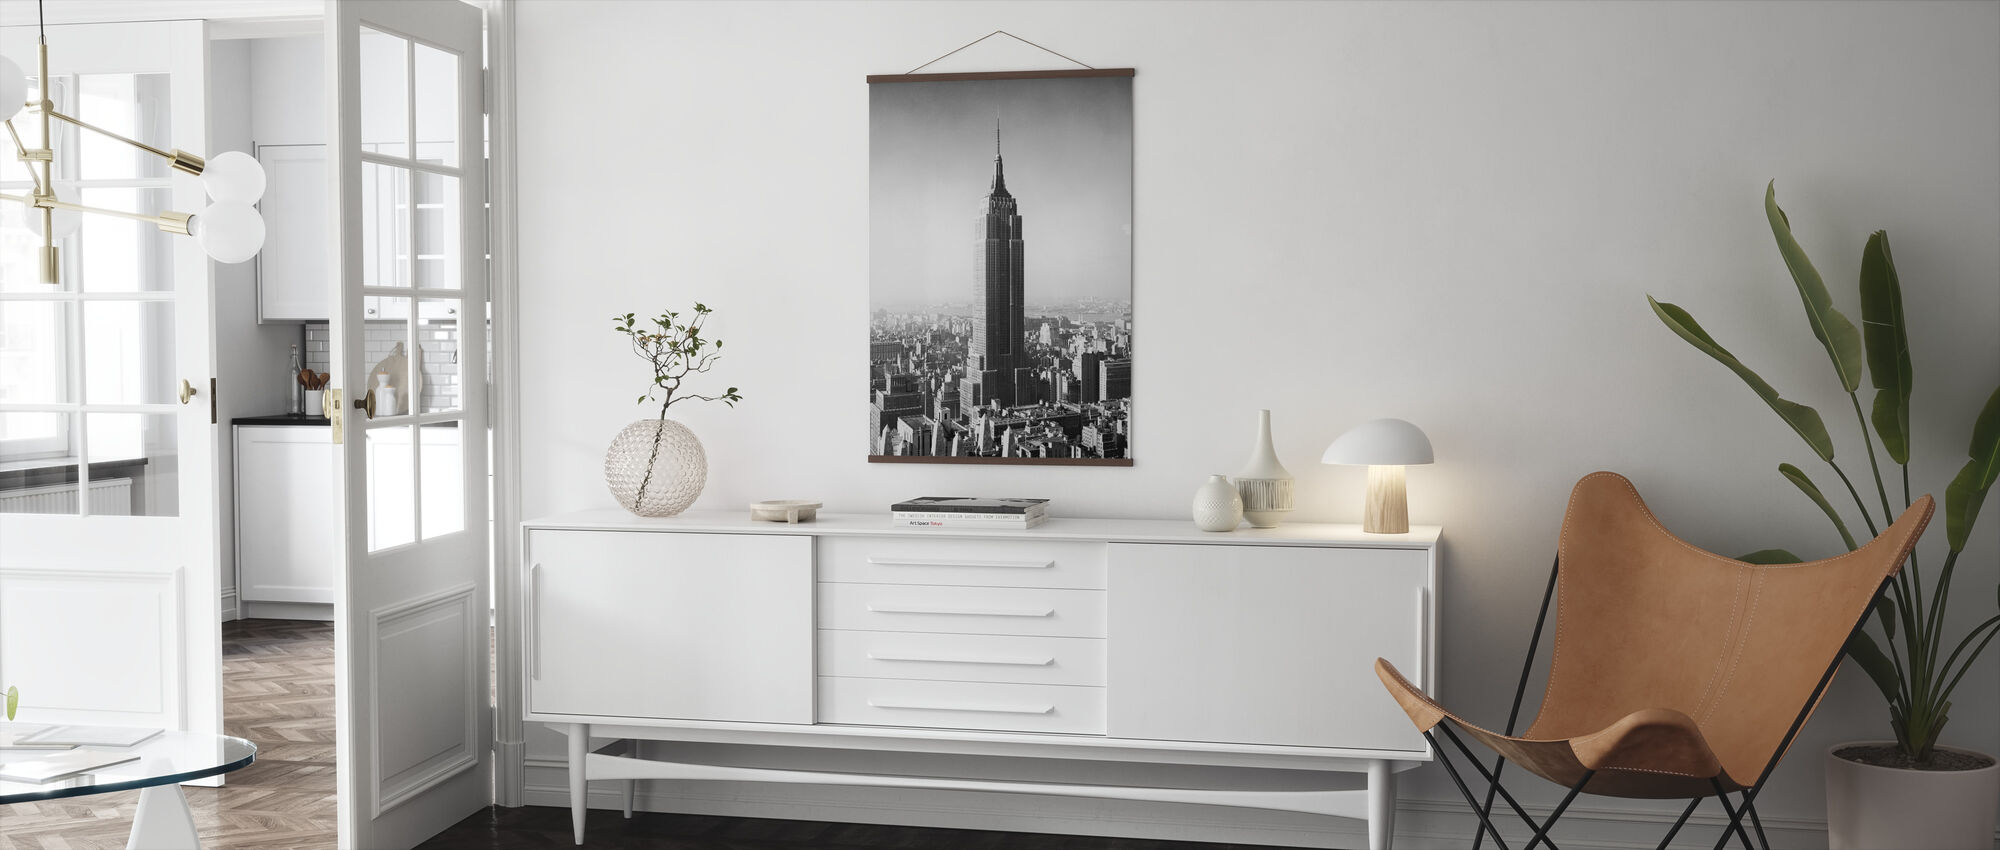 1955 The Empire State Building - Poster - Living Room